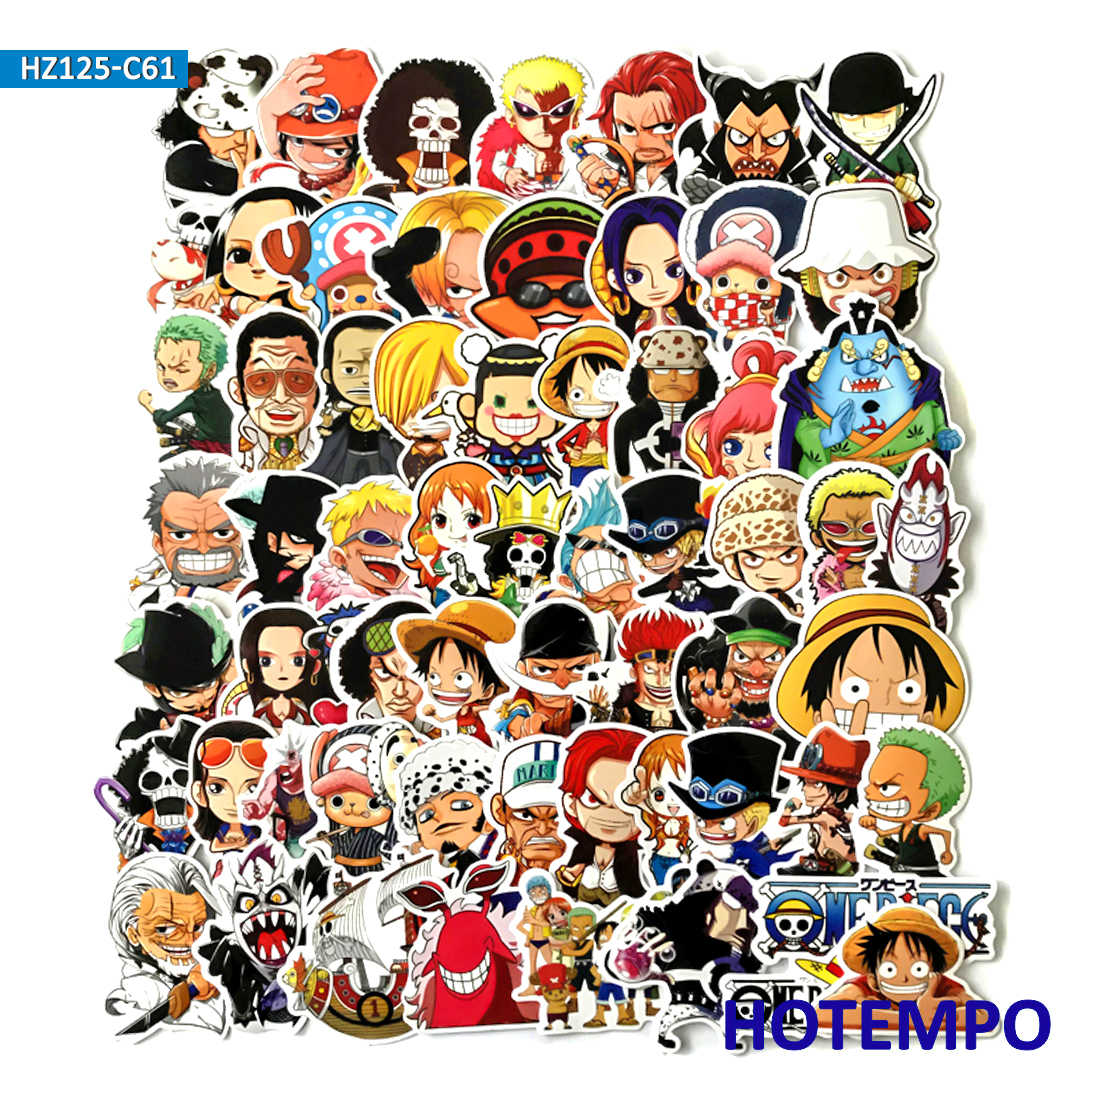 60pcs classics anime one piece stickers for mobile phone laptop luggage guitar case skateboard fixed gear